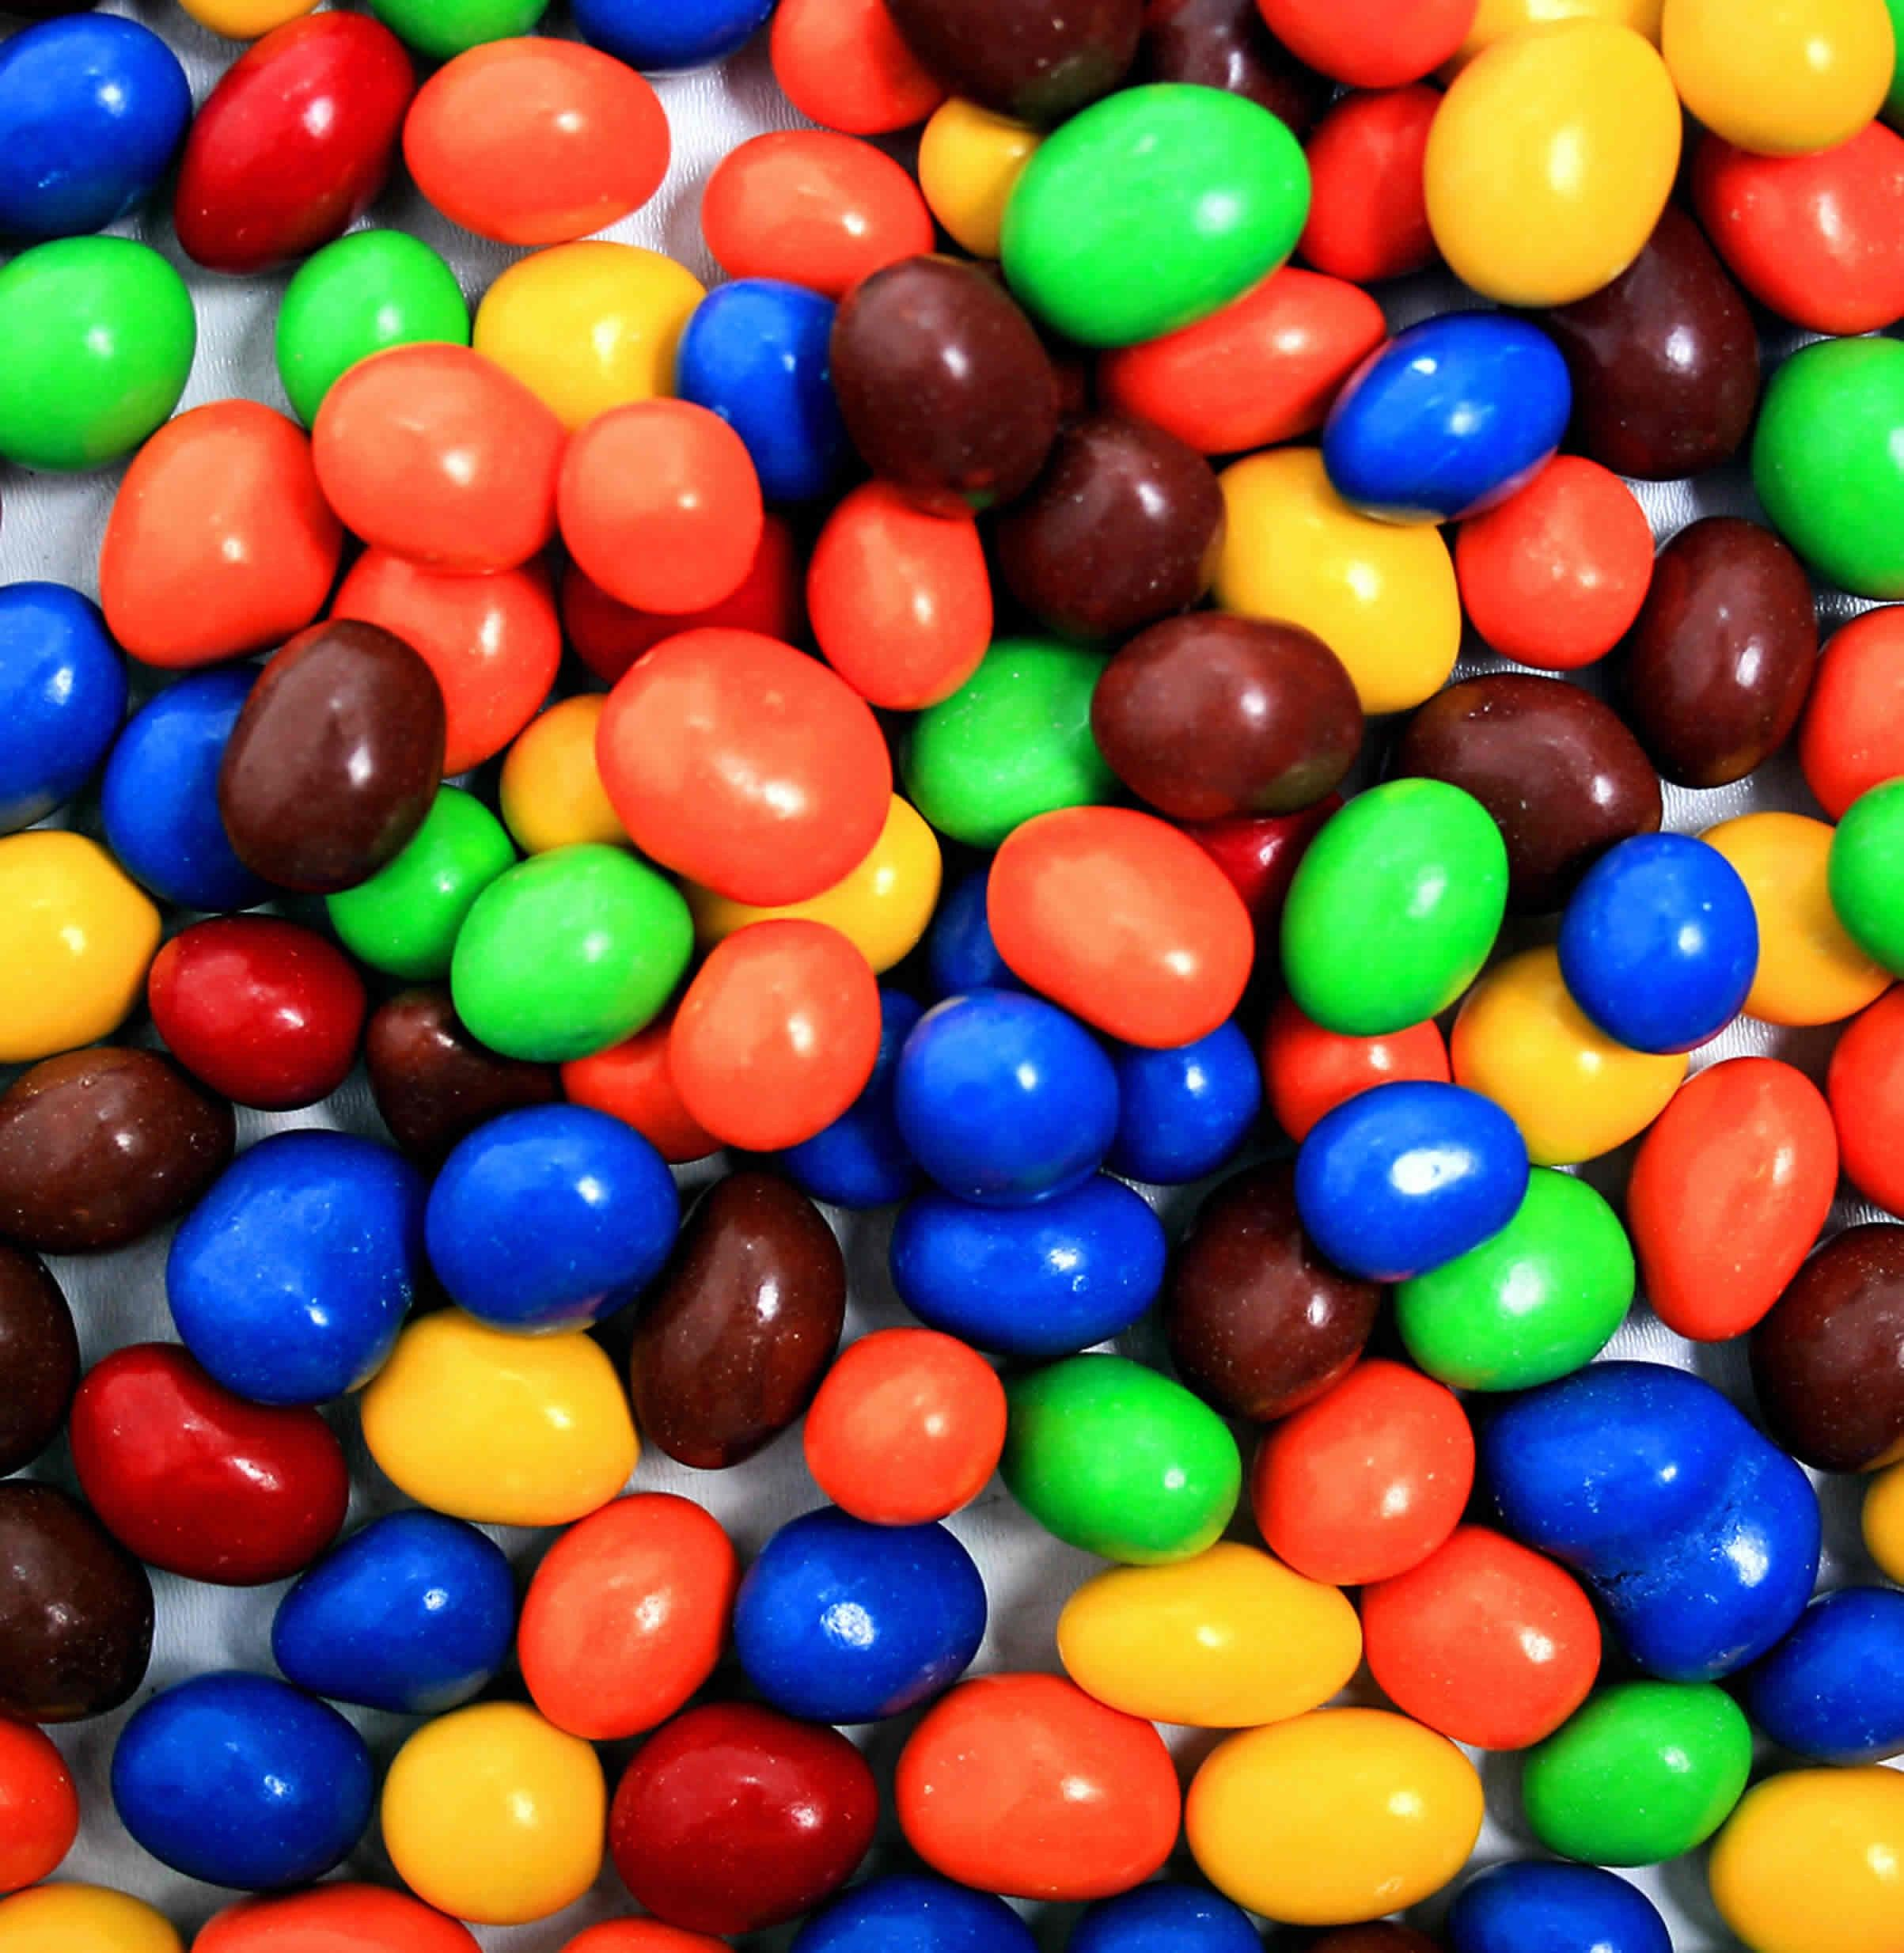 Candy Coated Peanut Butter Chocolate M M